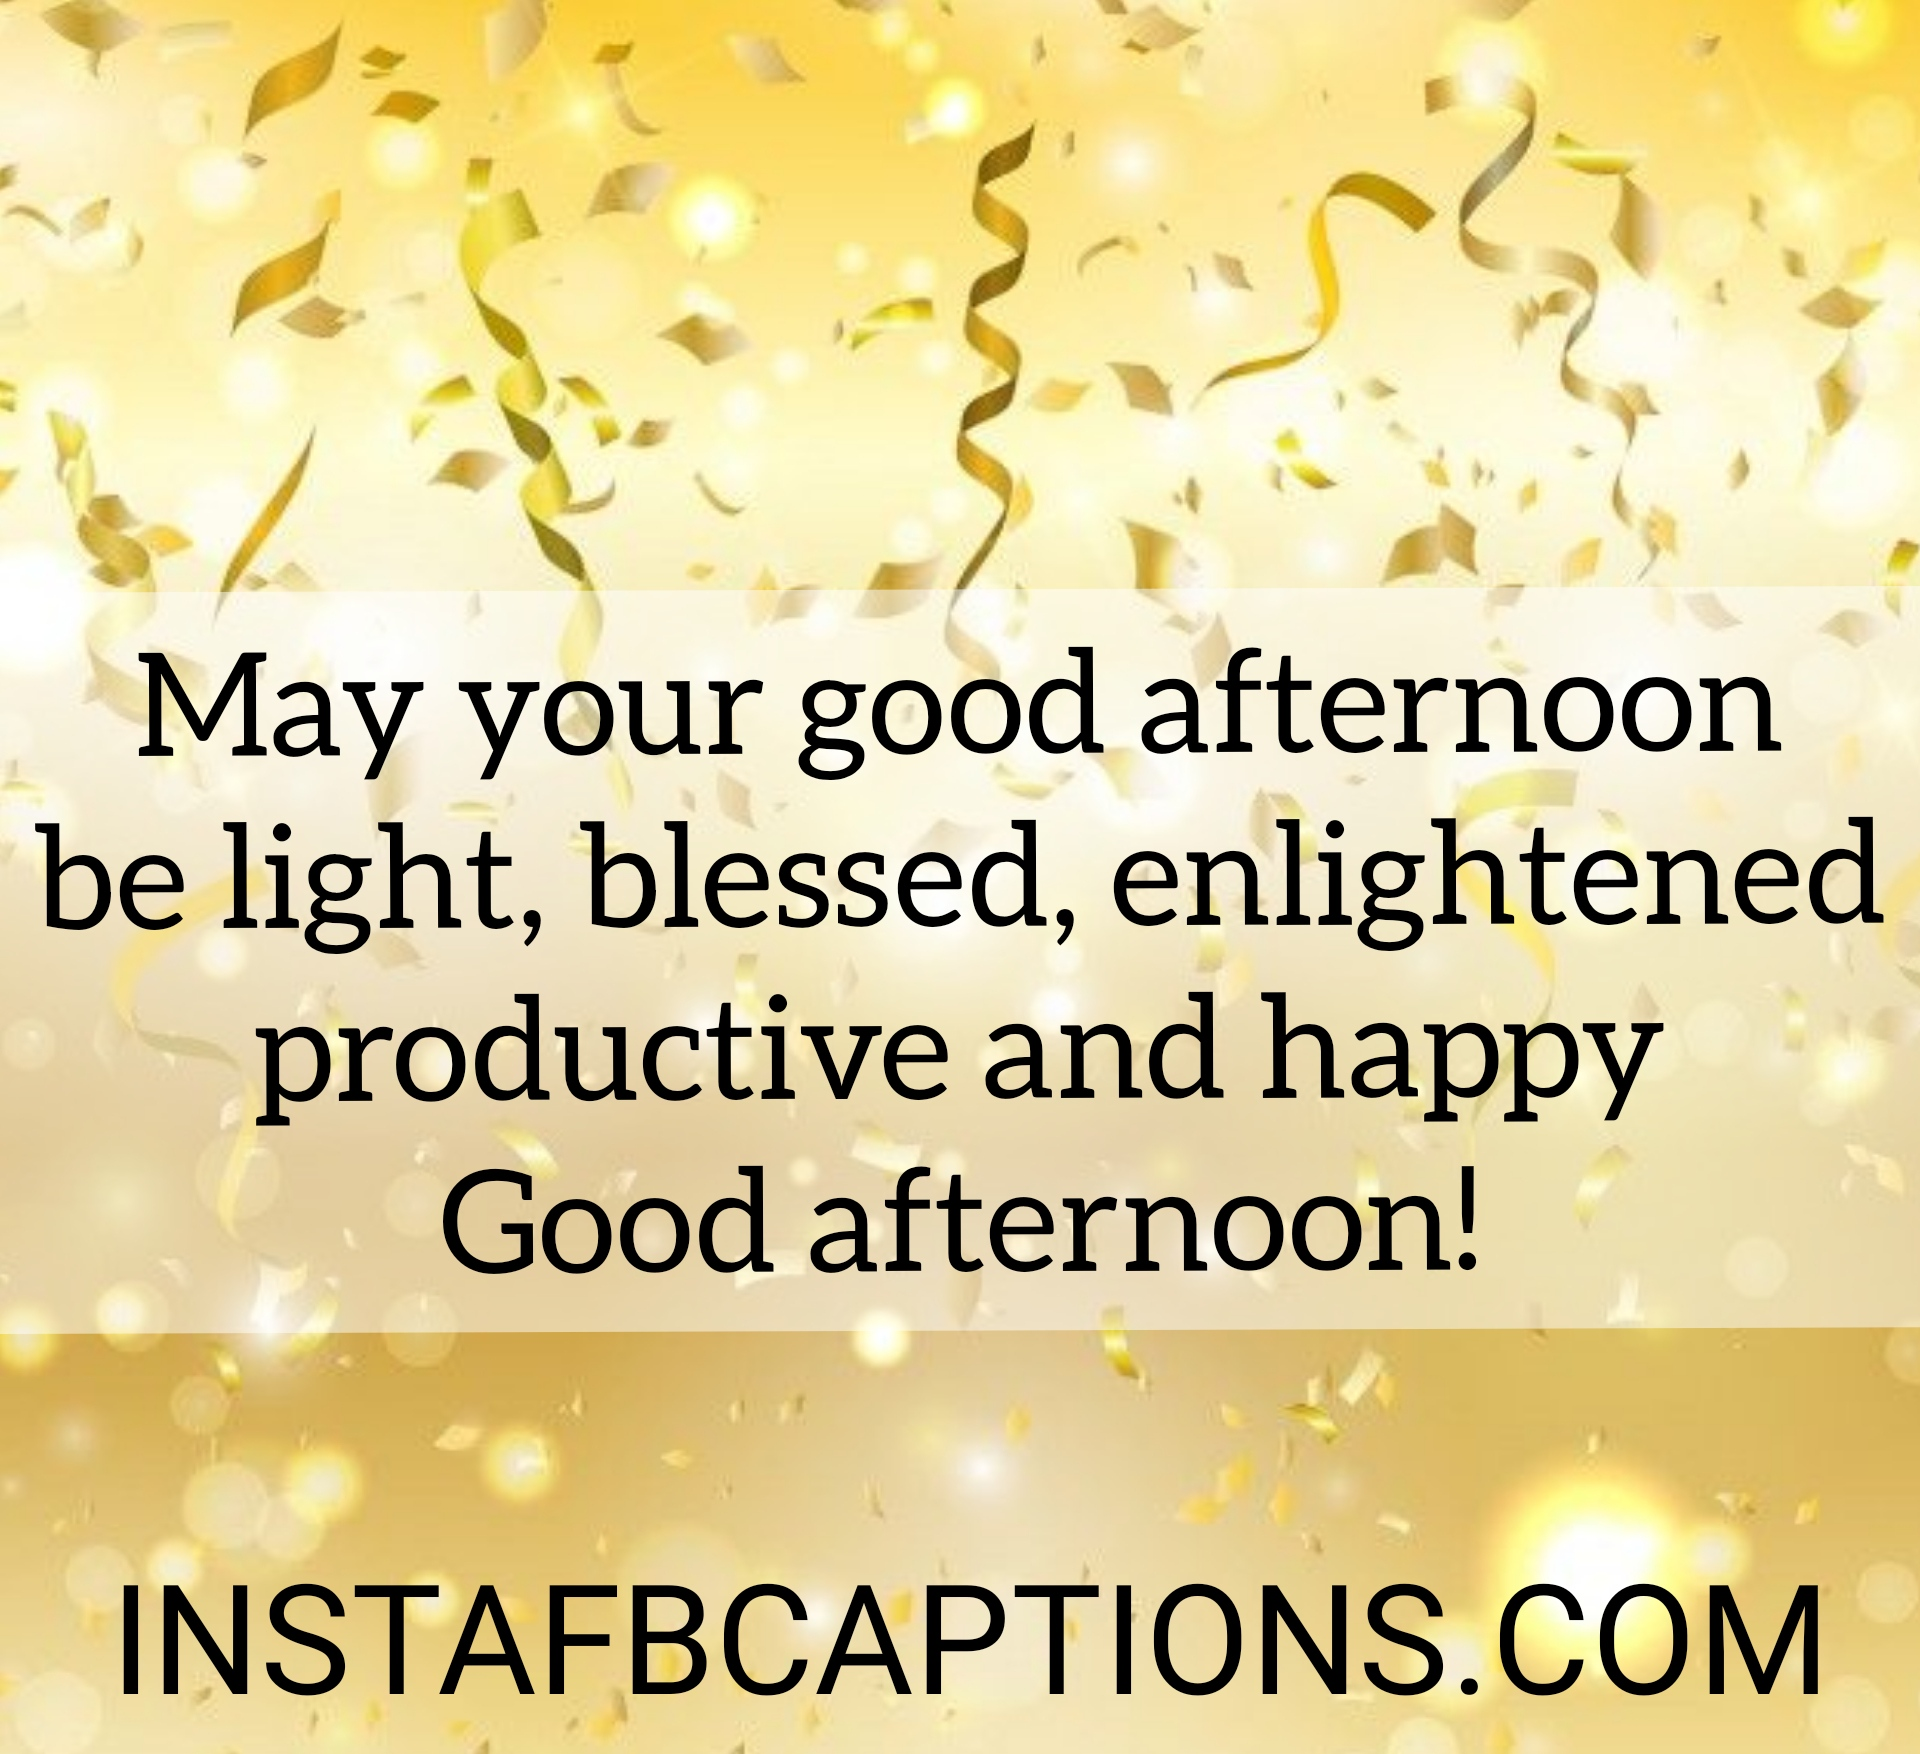 Good Afternoon Wishes  - Good afternoon wishes - 50+ GOOD AFTERNOON Instagram Captions 2021